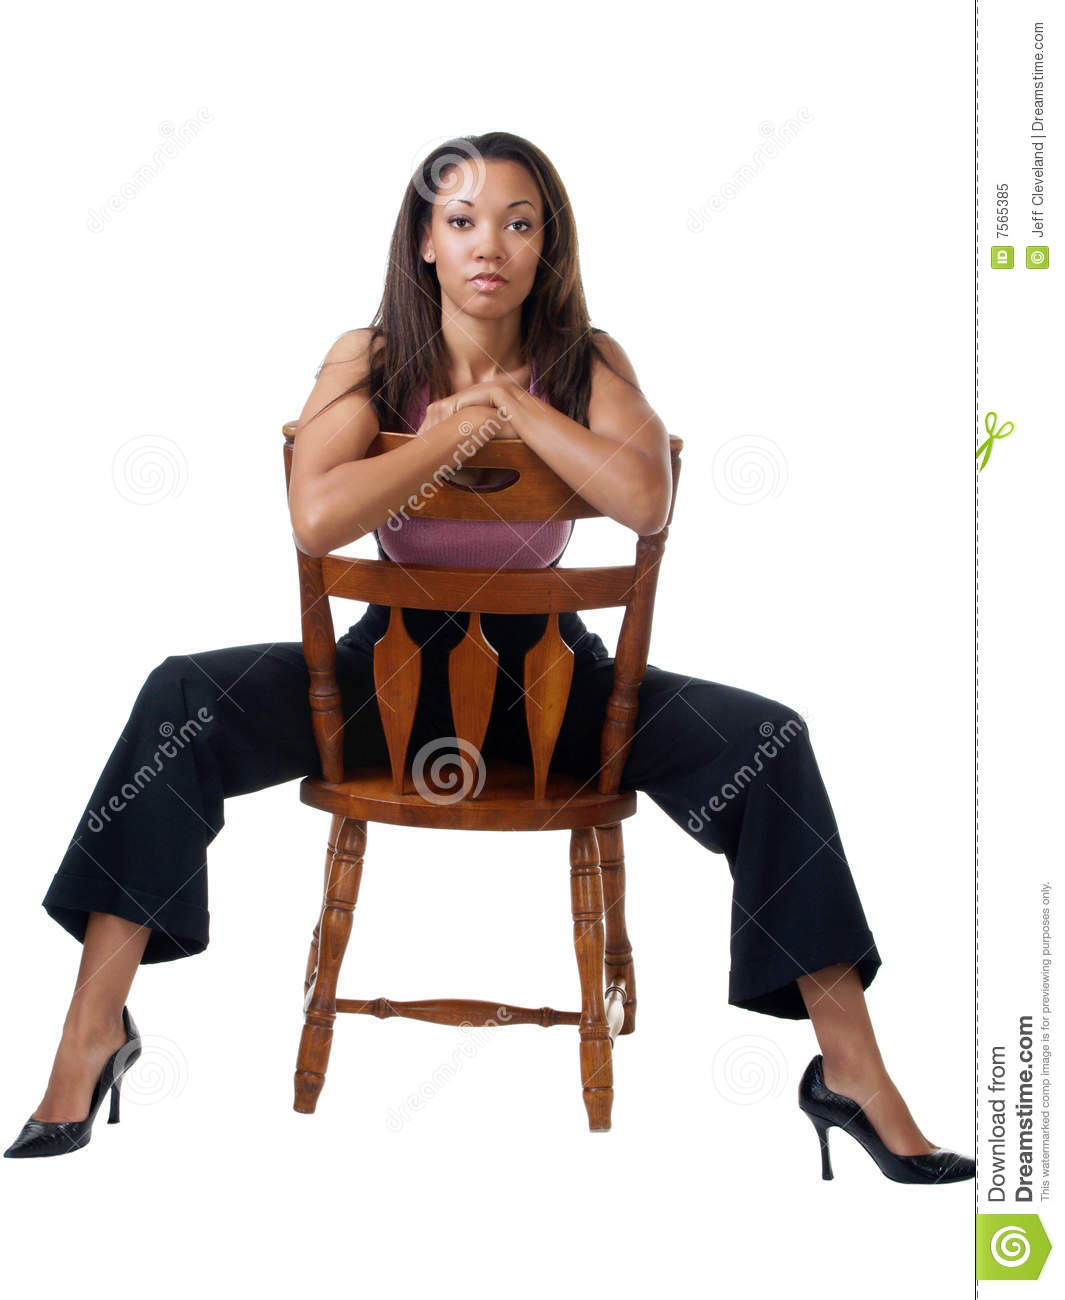 Chair Pants Young Black Woman Staddling Chair In Pants Outfit Stock Image